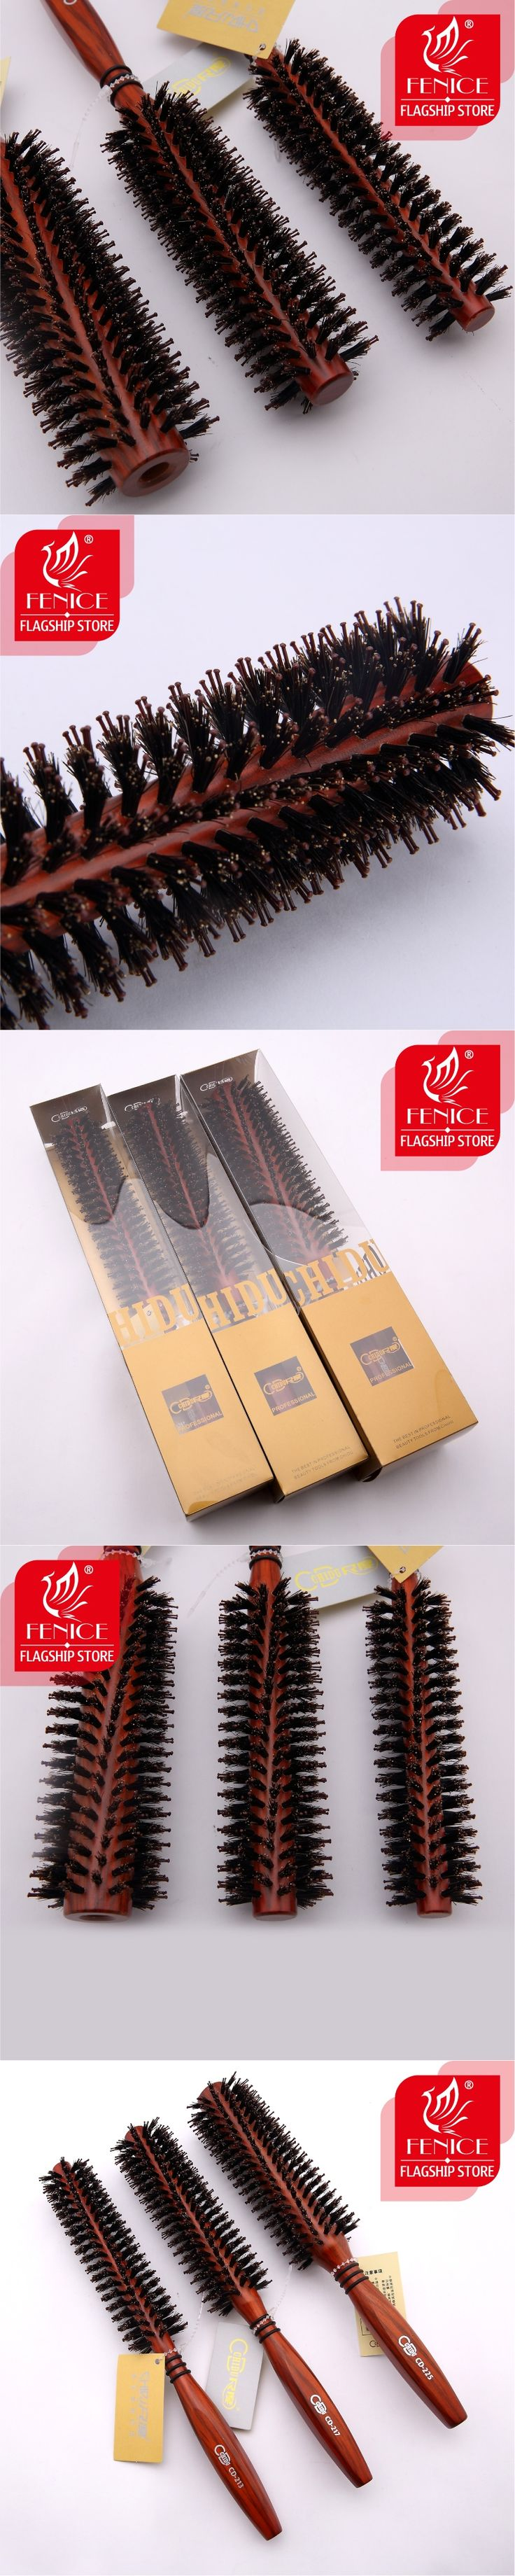 Roll round hair brush  bristle pig mane comb wood handle Brown bristles For curly hair Round bristles tips twill